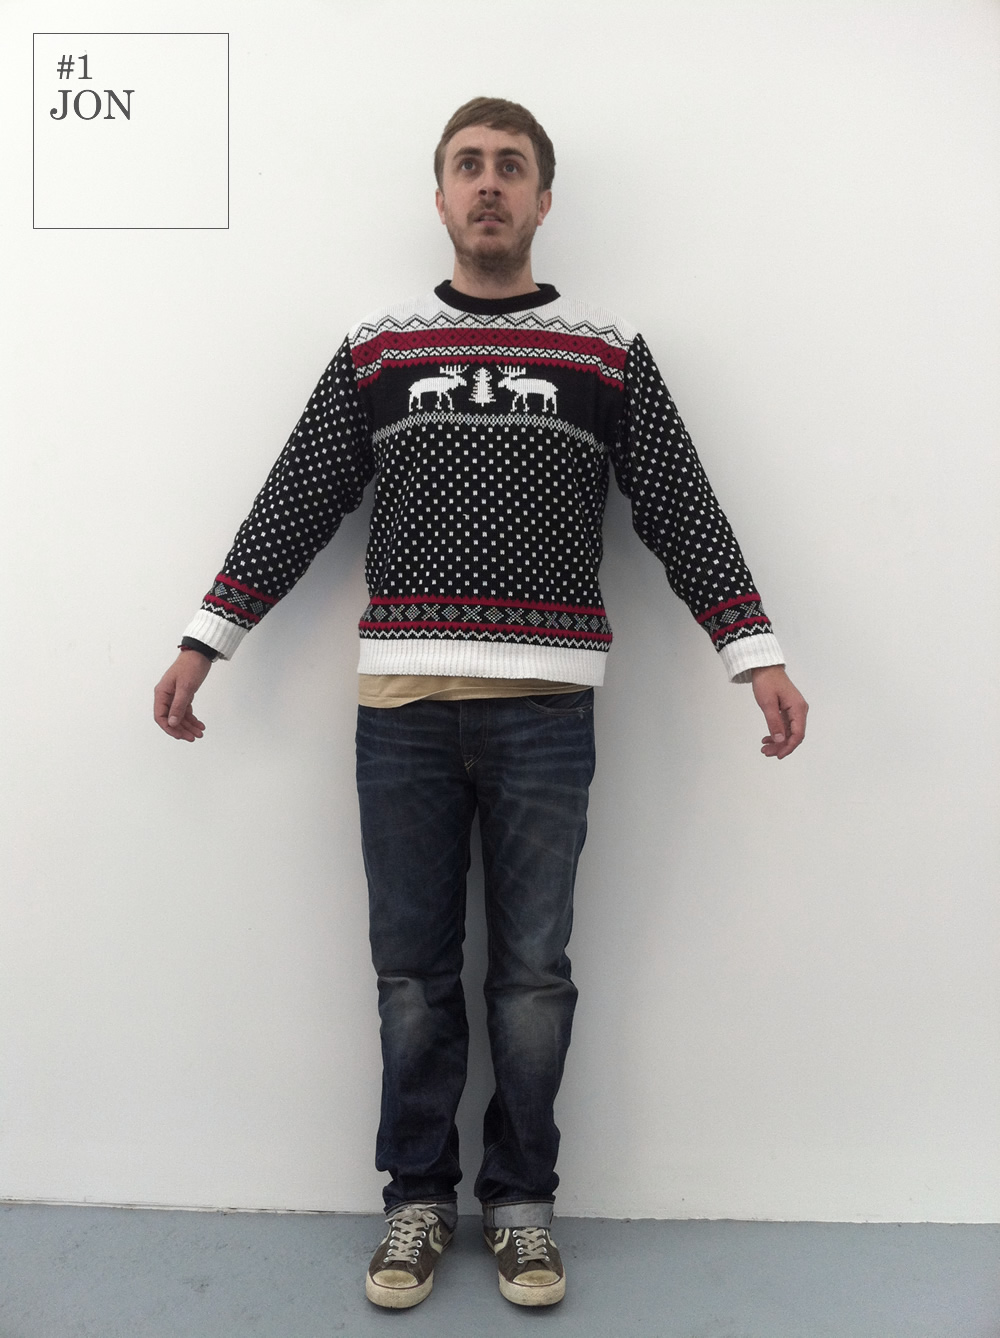 Jon demonstrates how to manage the difficult transition between spring/summer and autumn/winter with his unique sartorial approach. In an unorthodox pairing, he combines designer jeans with vintage knitwear for a unique, fashion forward daywear look. Who said jumpers were just for Christmas?     Jeans: Flying Horse     Jumper: Model's Own